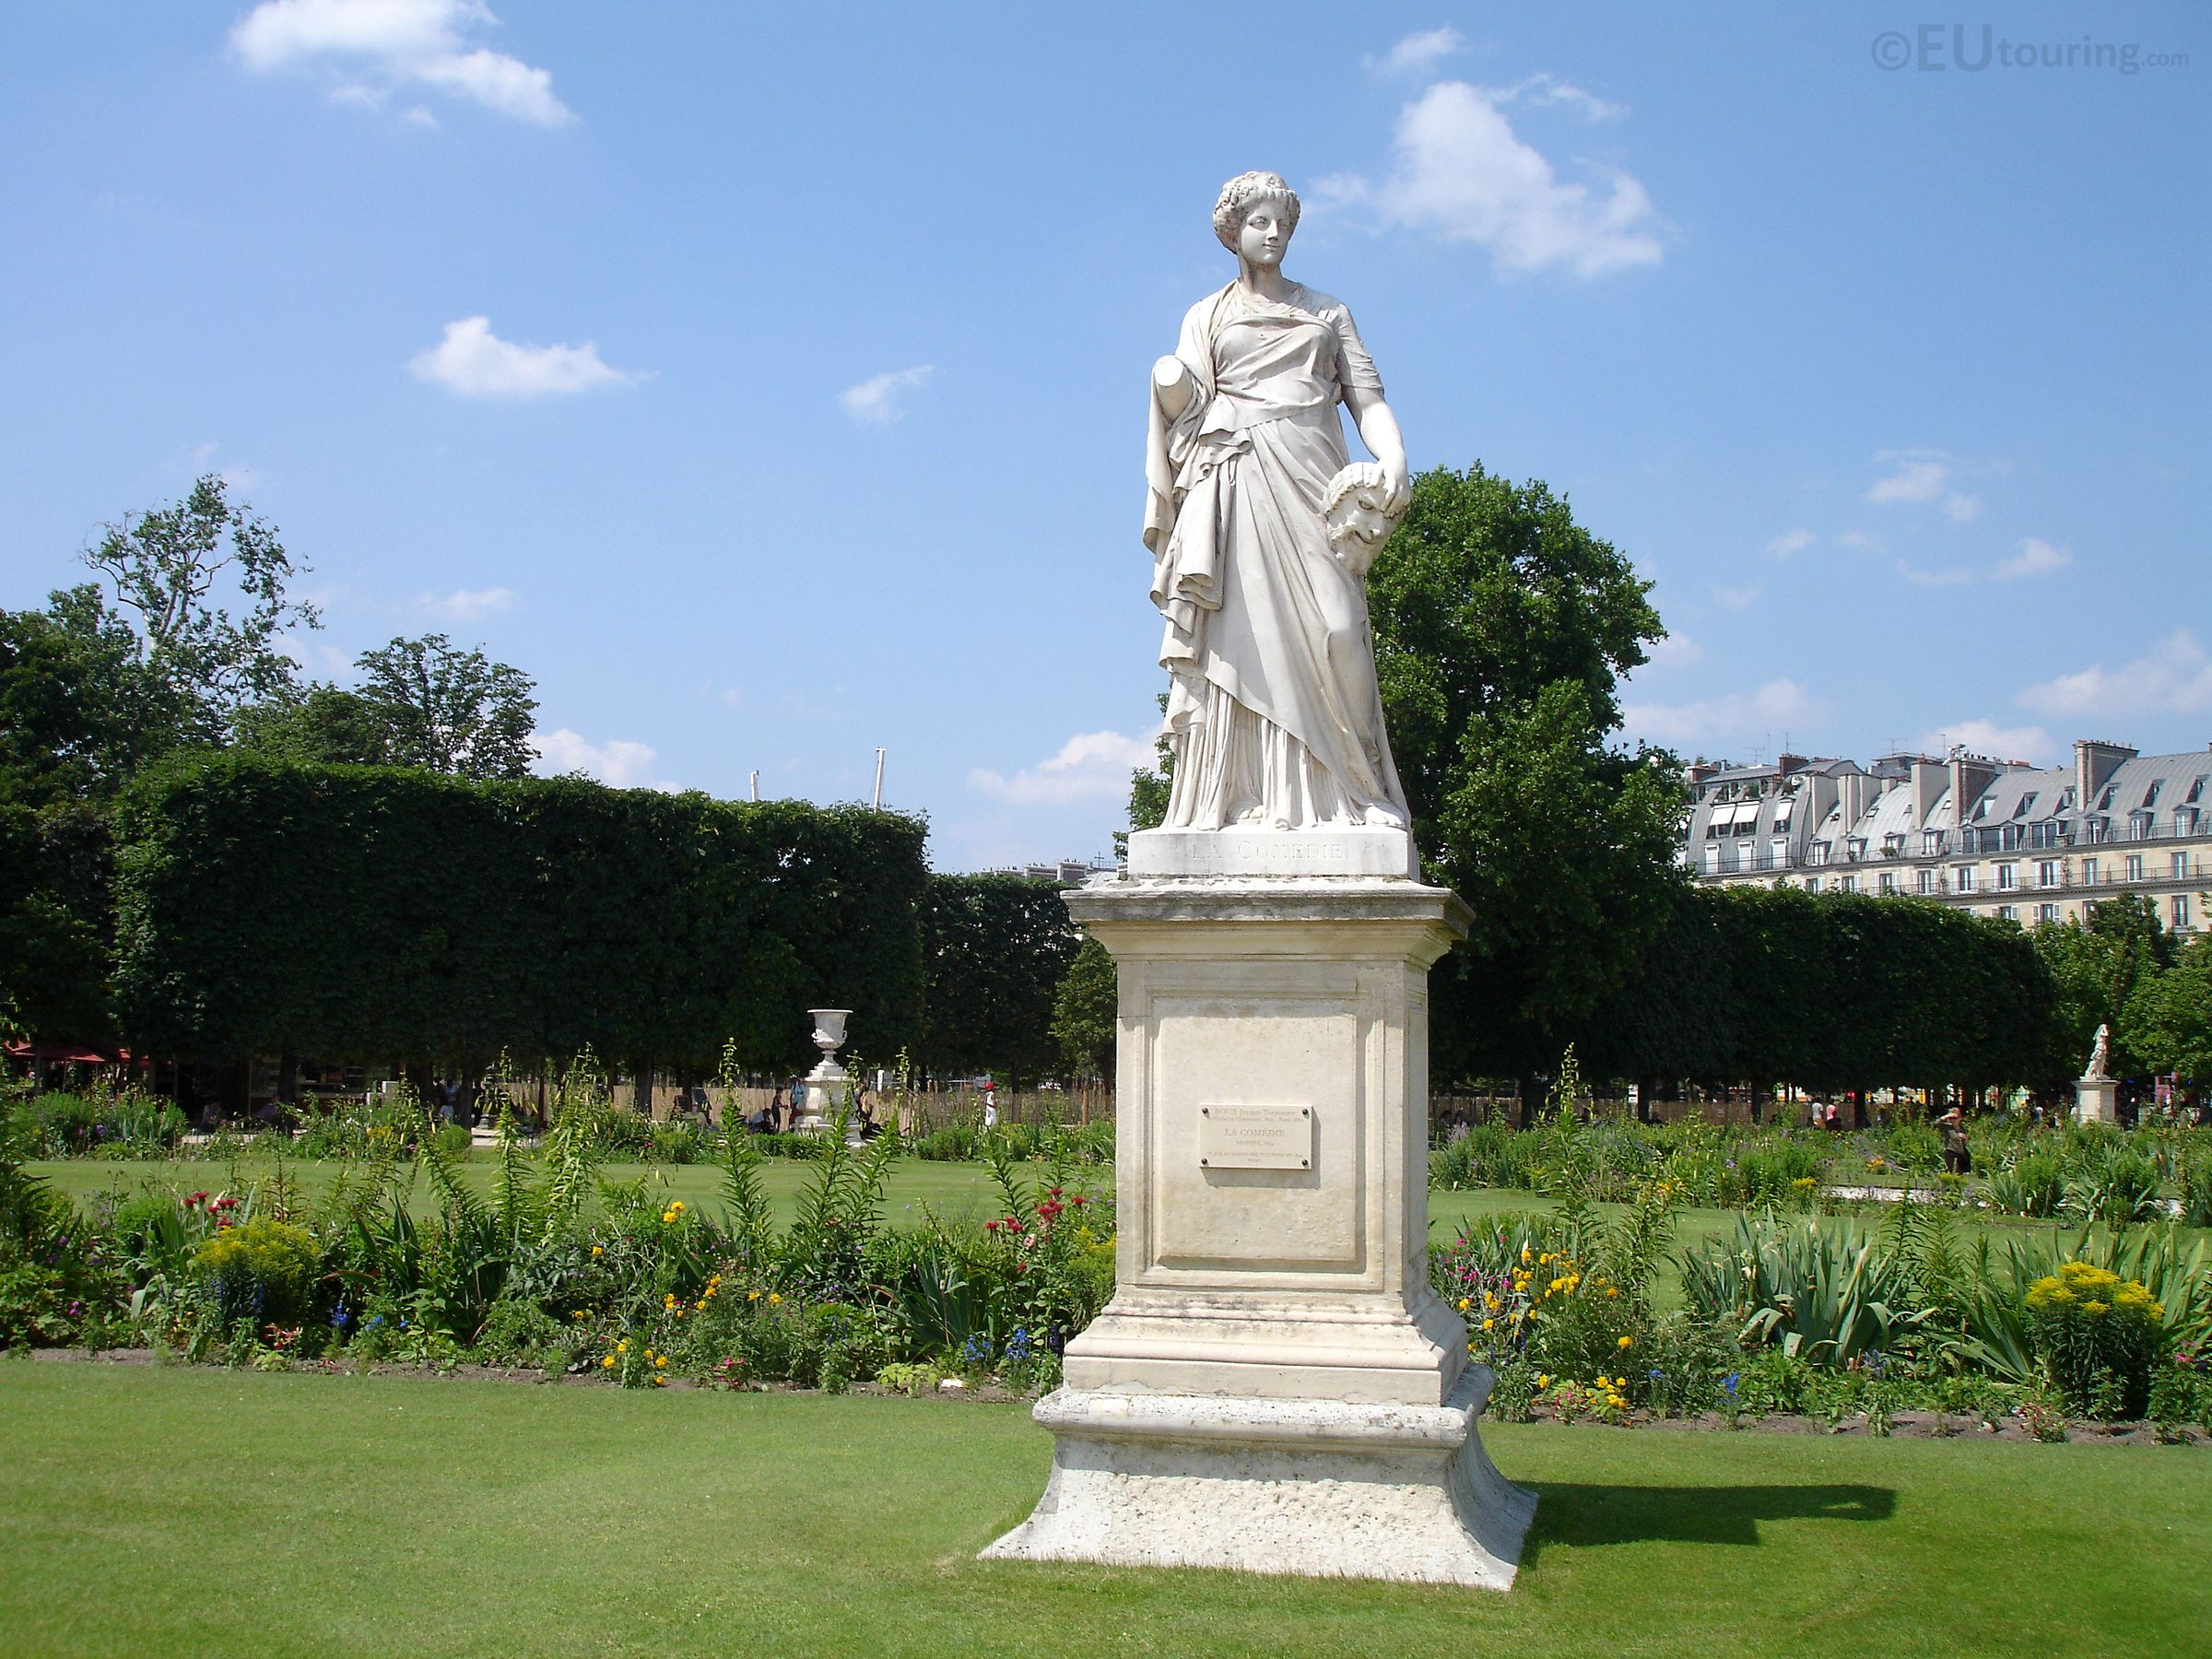 This statue called La Comedie can be found within the Tuileries Gardens and was sculpted by Julien Toussaint Roux in 1874 and has been in the gardens since.  You may also like www.eutouring.com/images_paris_statues.html